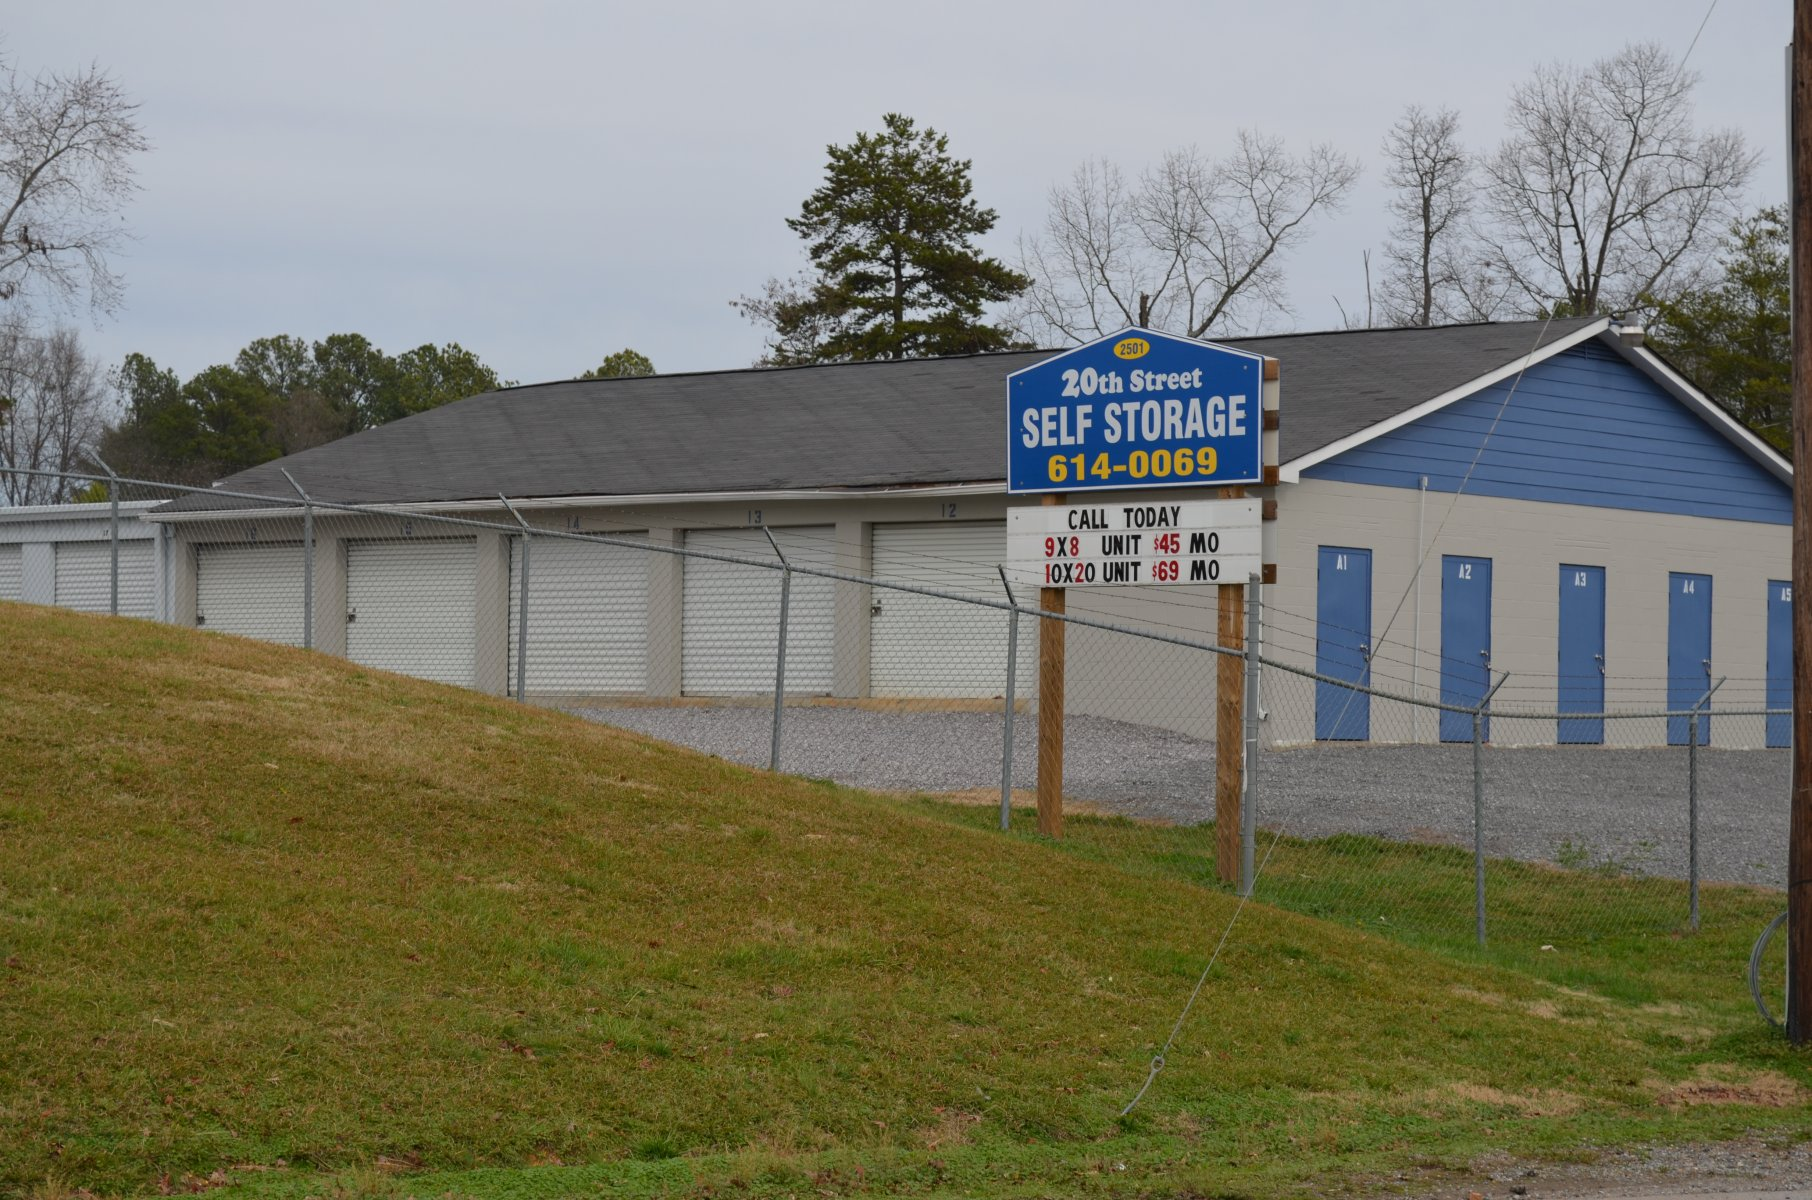 Front of Self Storage Facility